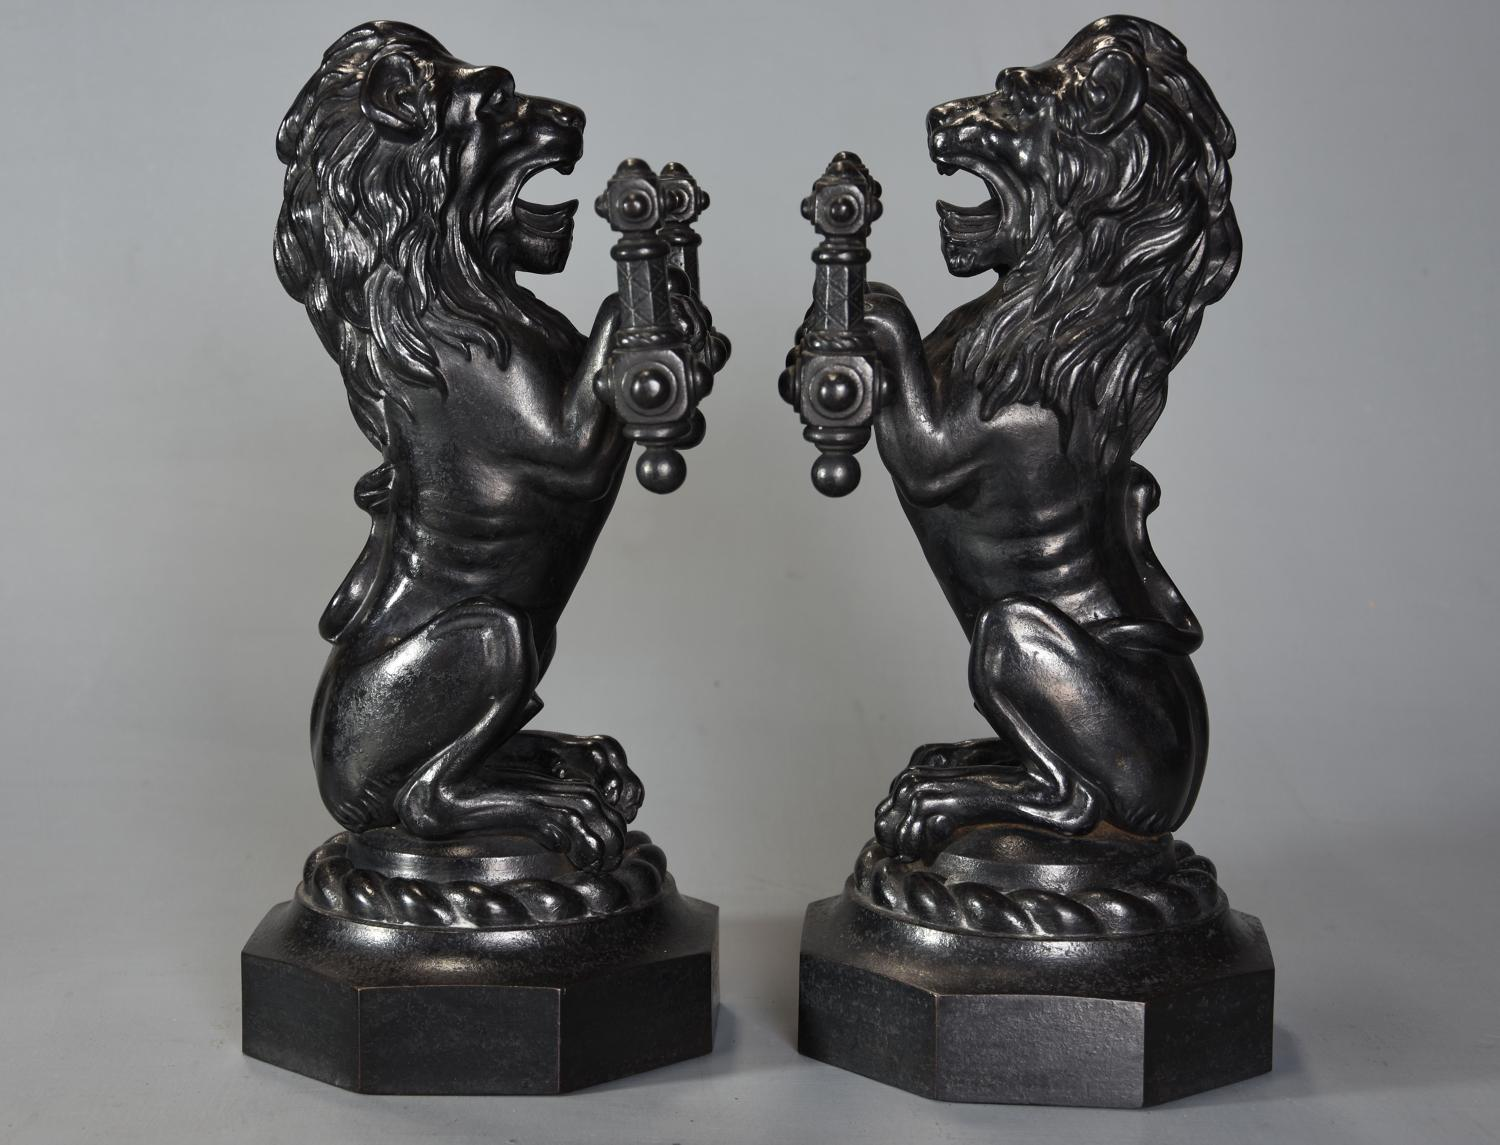 Pair of fine quality late 19thc cast iron lion fire dogs